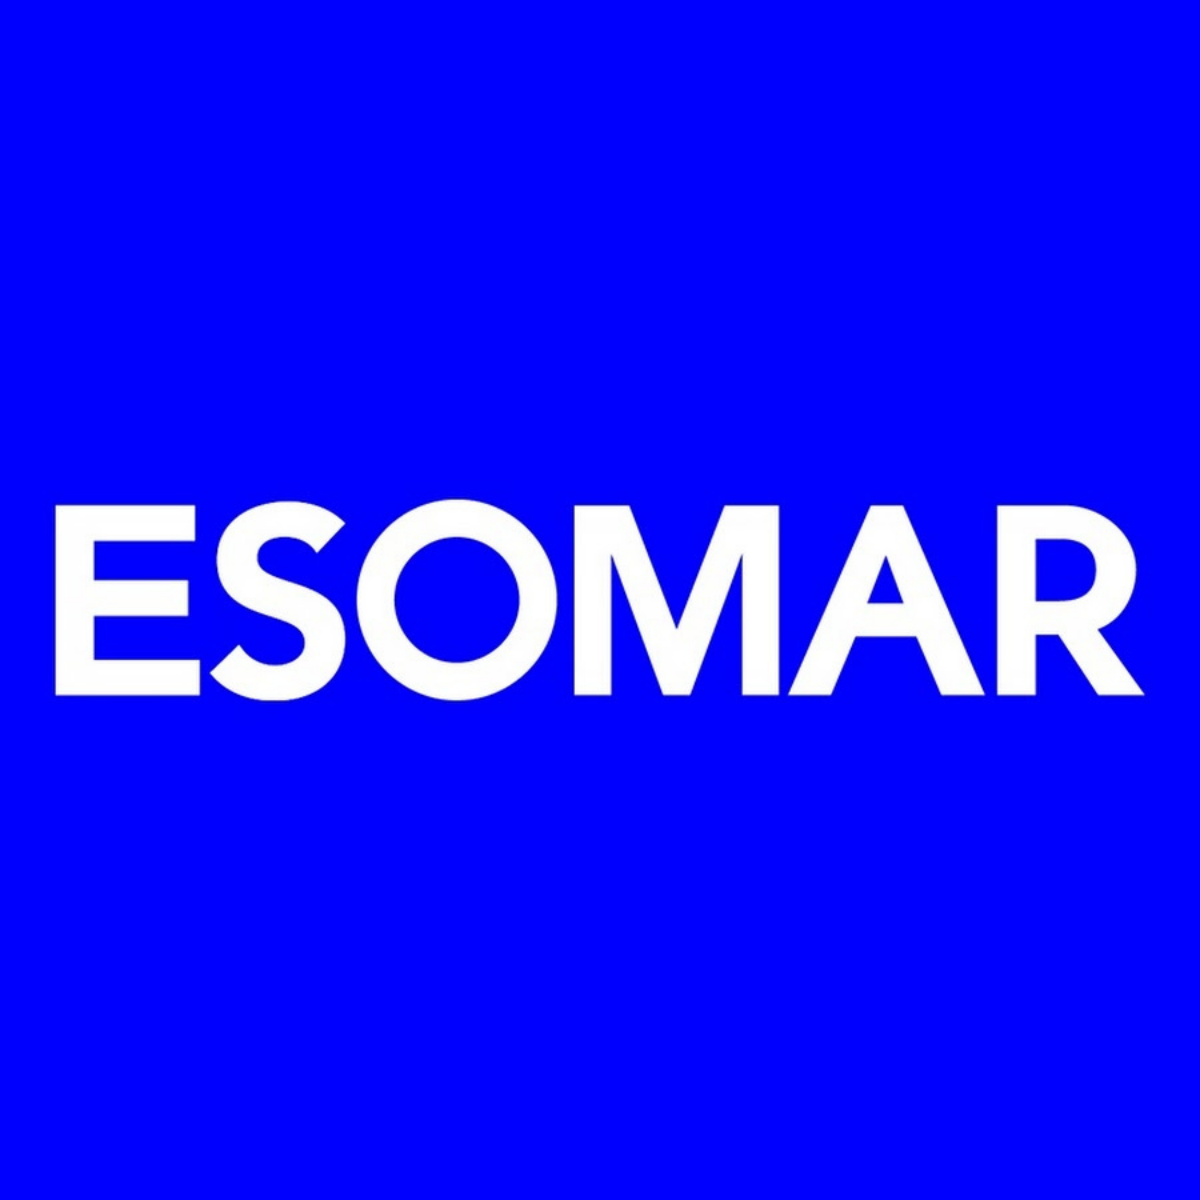 ESOMAR Fusion Panel Discussion About Social Intelligence